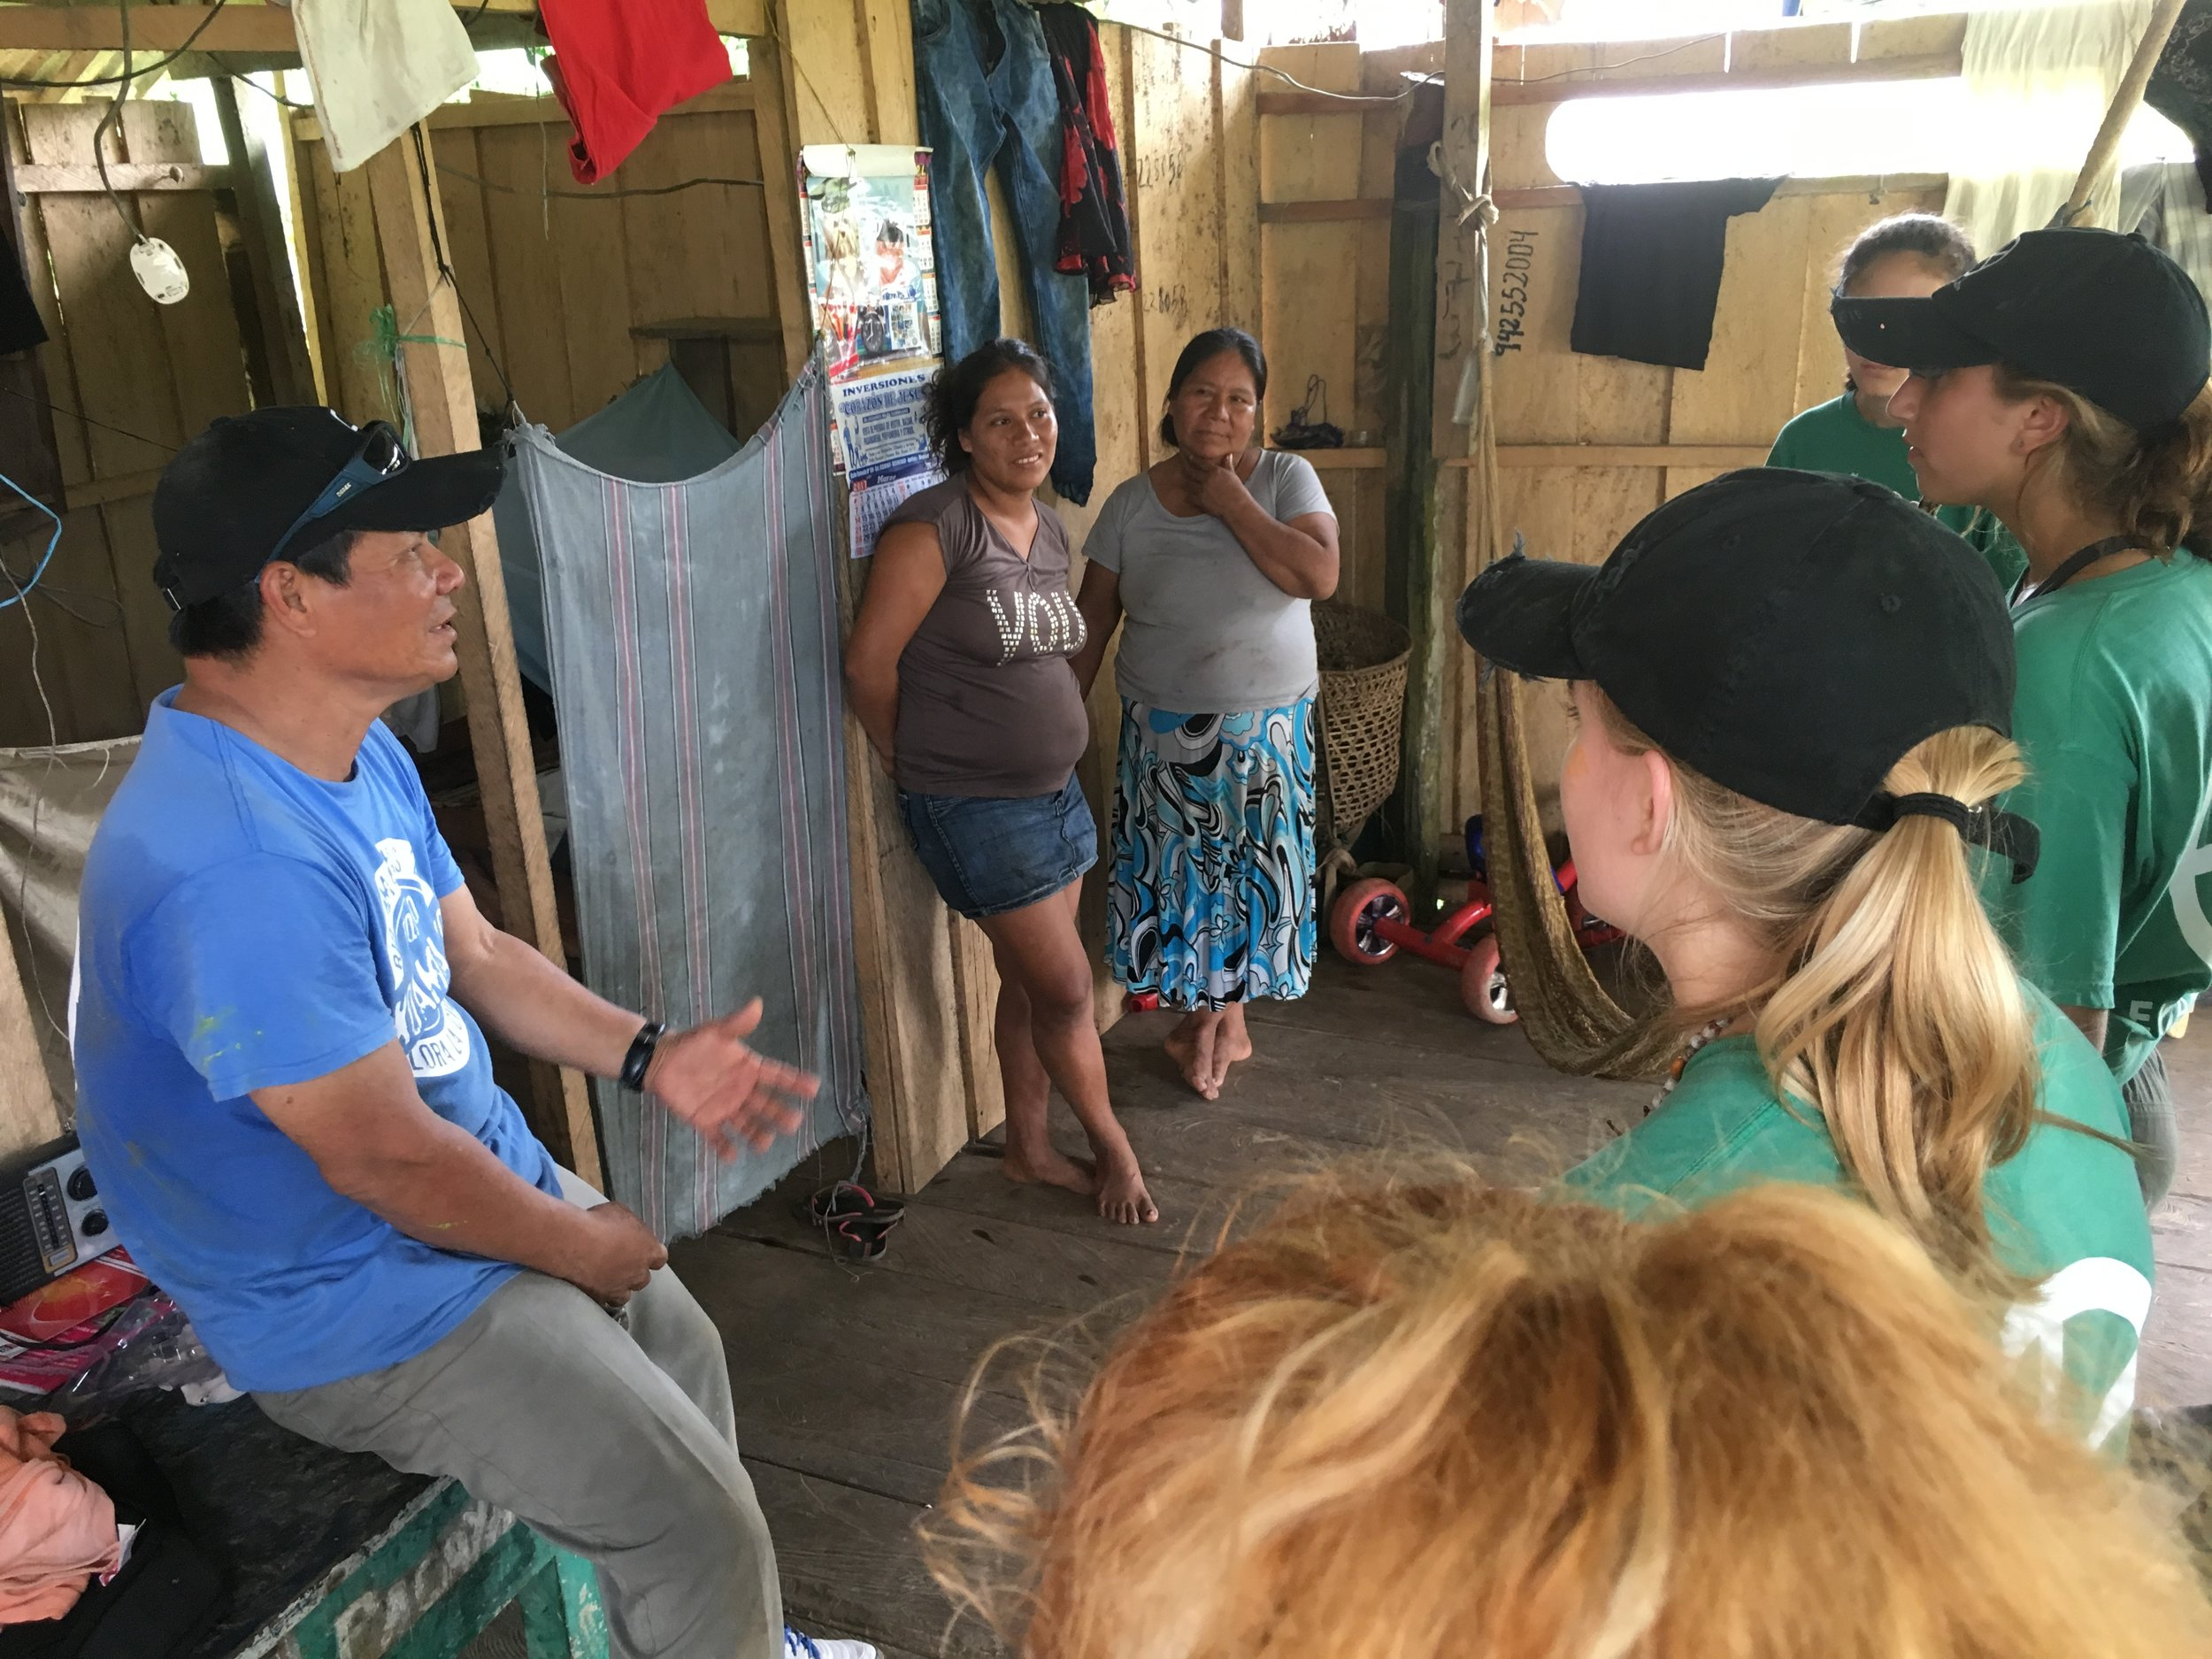 Roldan Hidalgo Peso   Born in the village of Timicuro Grande along the Amazon River, Roldan has been a guide for over 30 years. He truly enjoys his job everyday, especially working with student groups. His specialties are culture, fish, animals, plants, insects and spiders.